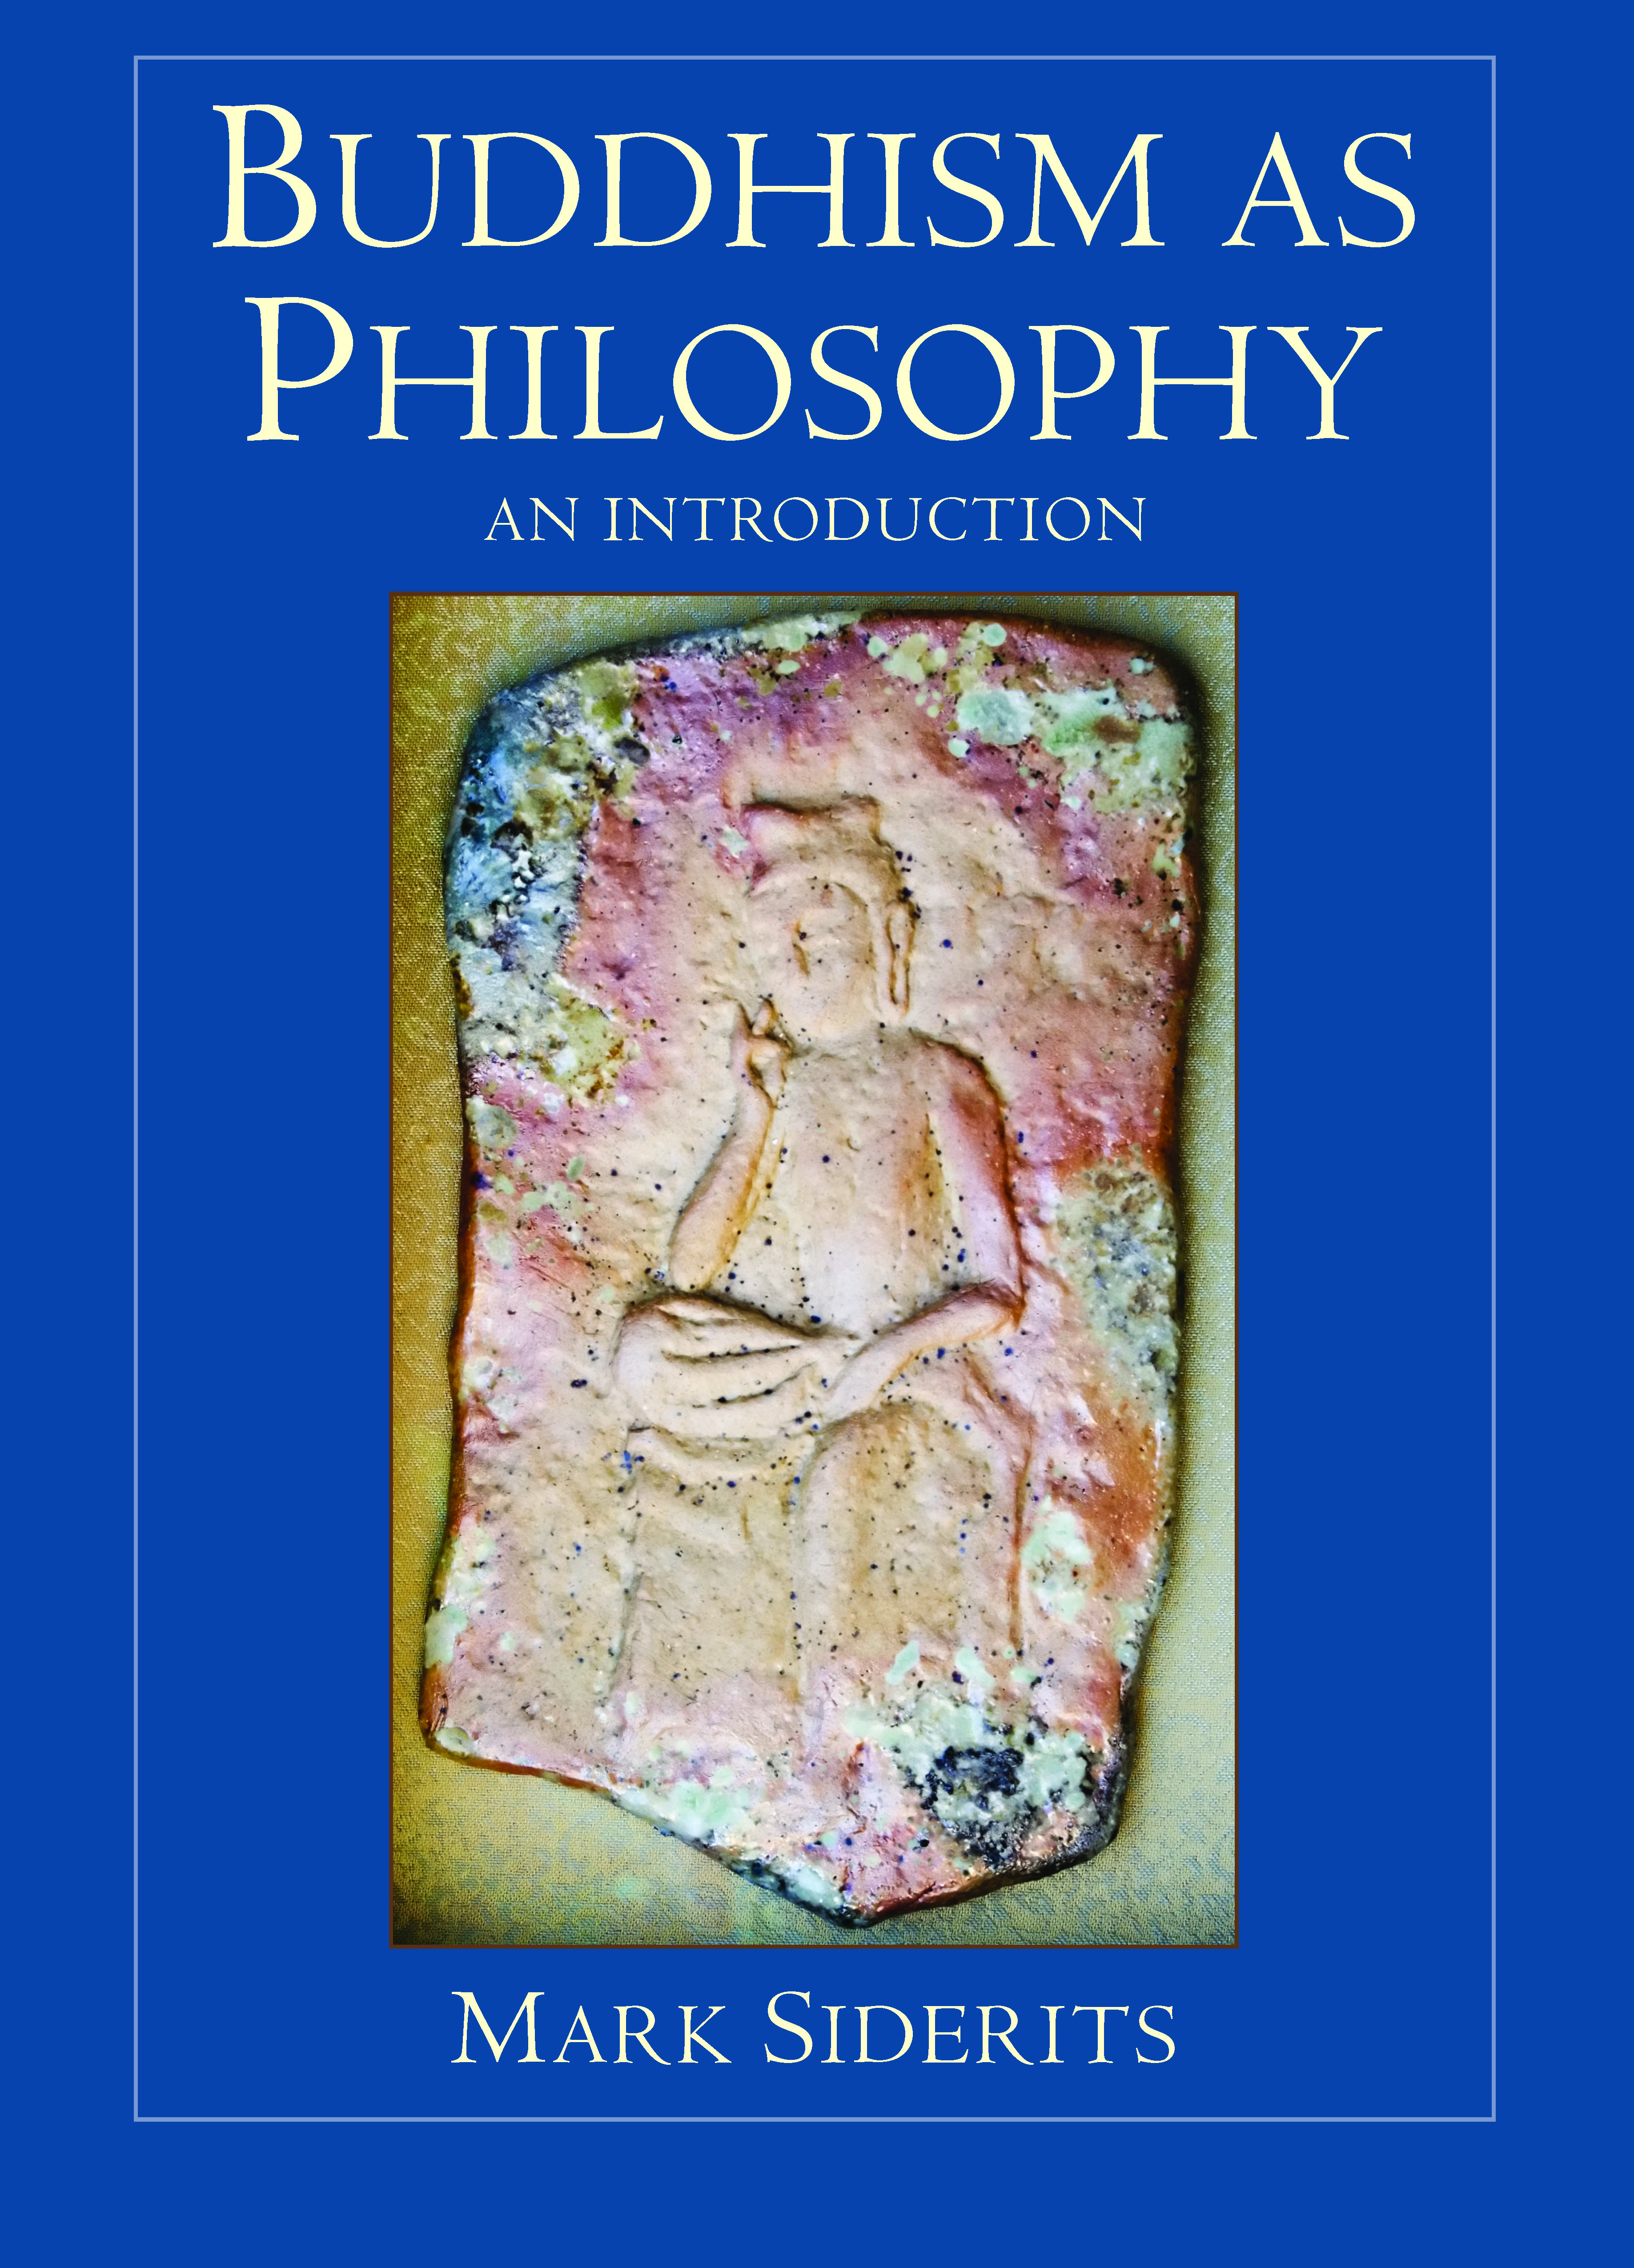 an introduction to the buddhist philosophy An introduction to buddhist philosophy (cambridge introductions to philosophy) [stephen j laumakis] on amazoncom free shipping on qualifying offers in this clearly written undergraduate textbook, stephen laumakis explains the origin and development of buddhist ideas and concepts.